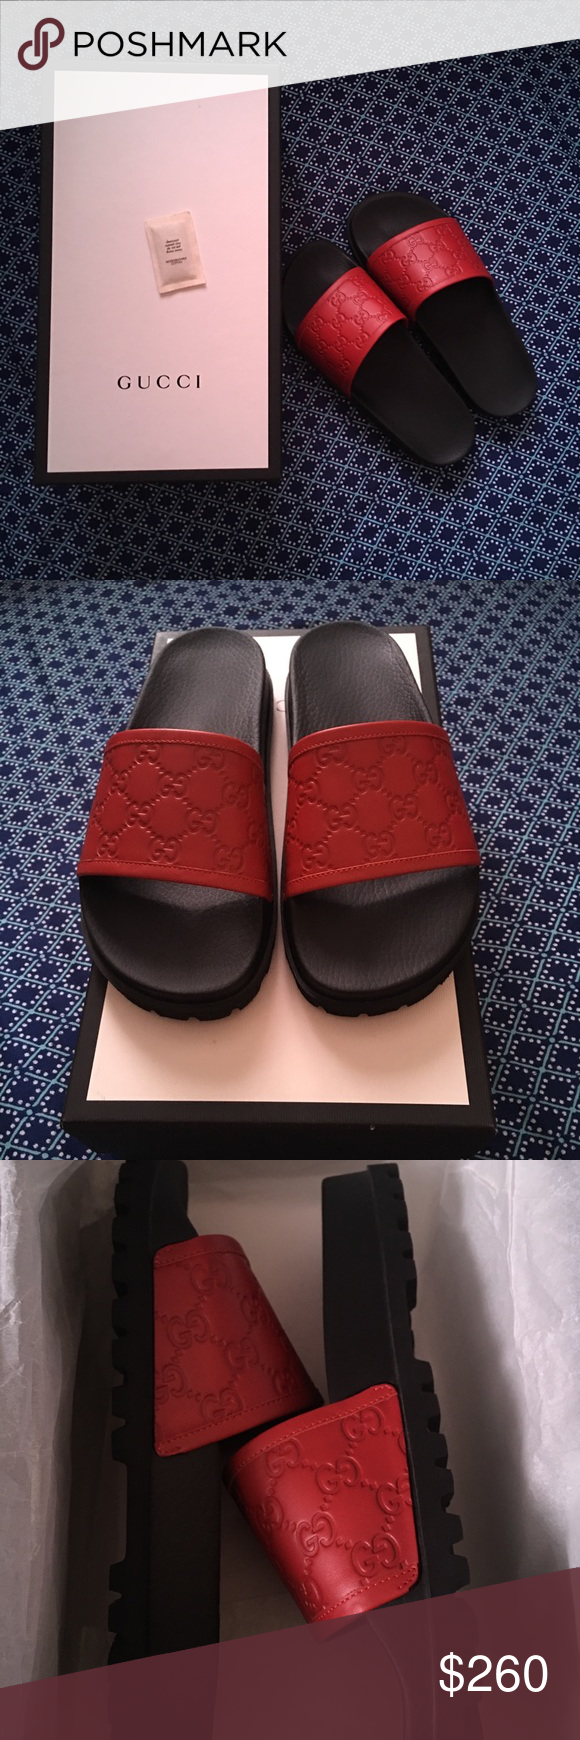 a230b4bc992a Gucci Signature Slides Sandals Never Used! Got the wrong size. Style 431070  CWD20